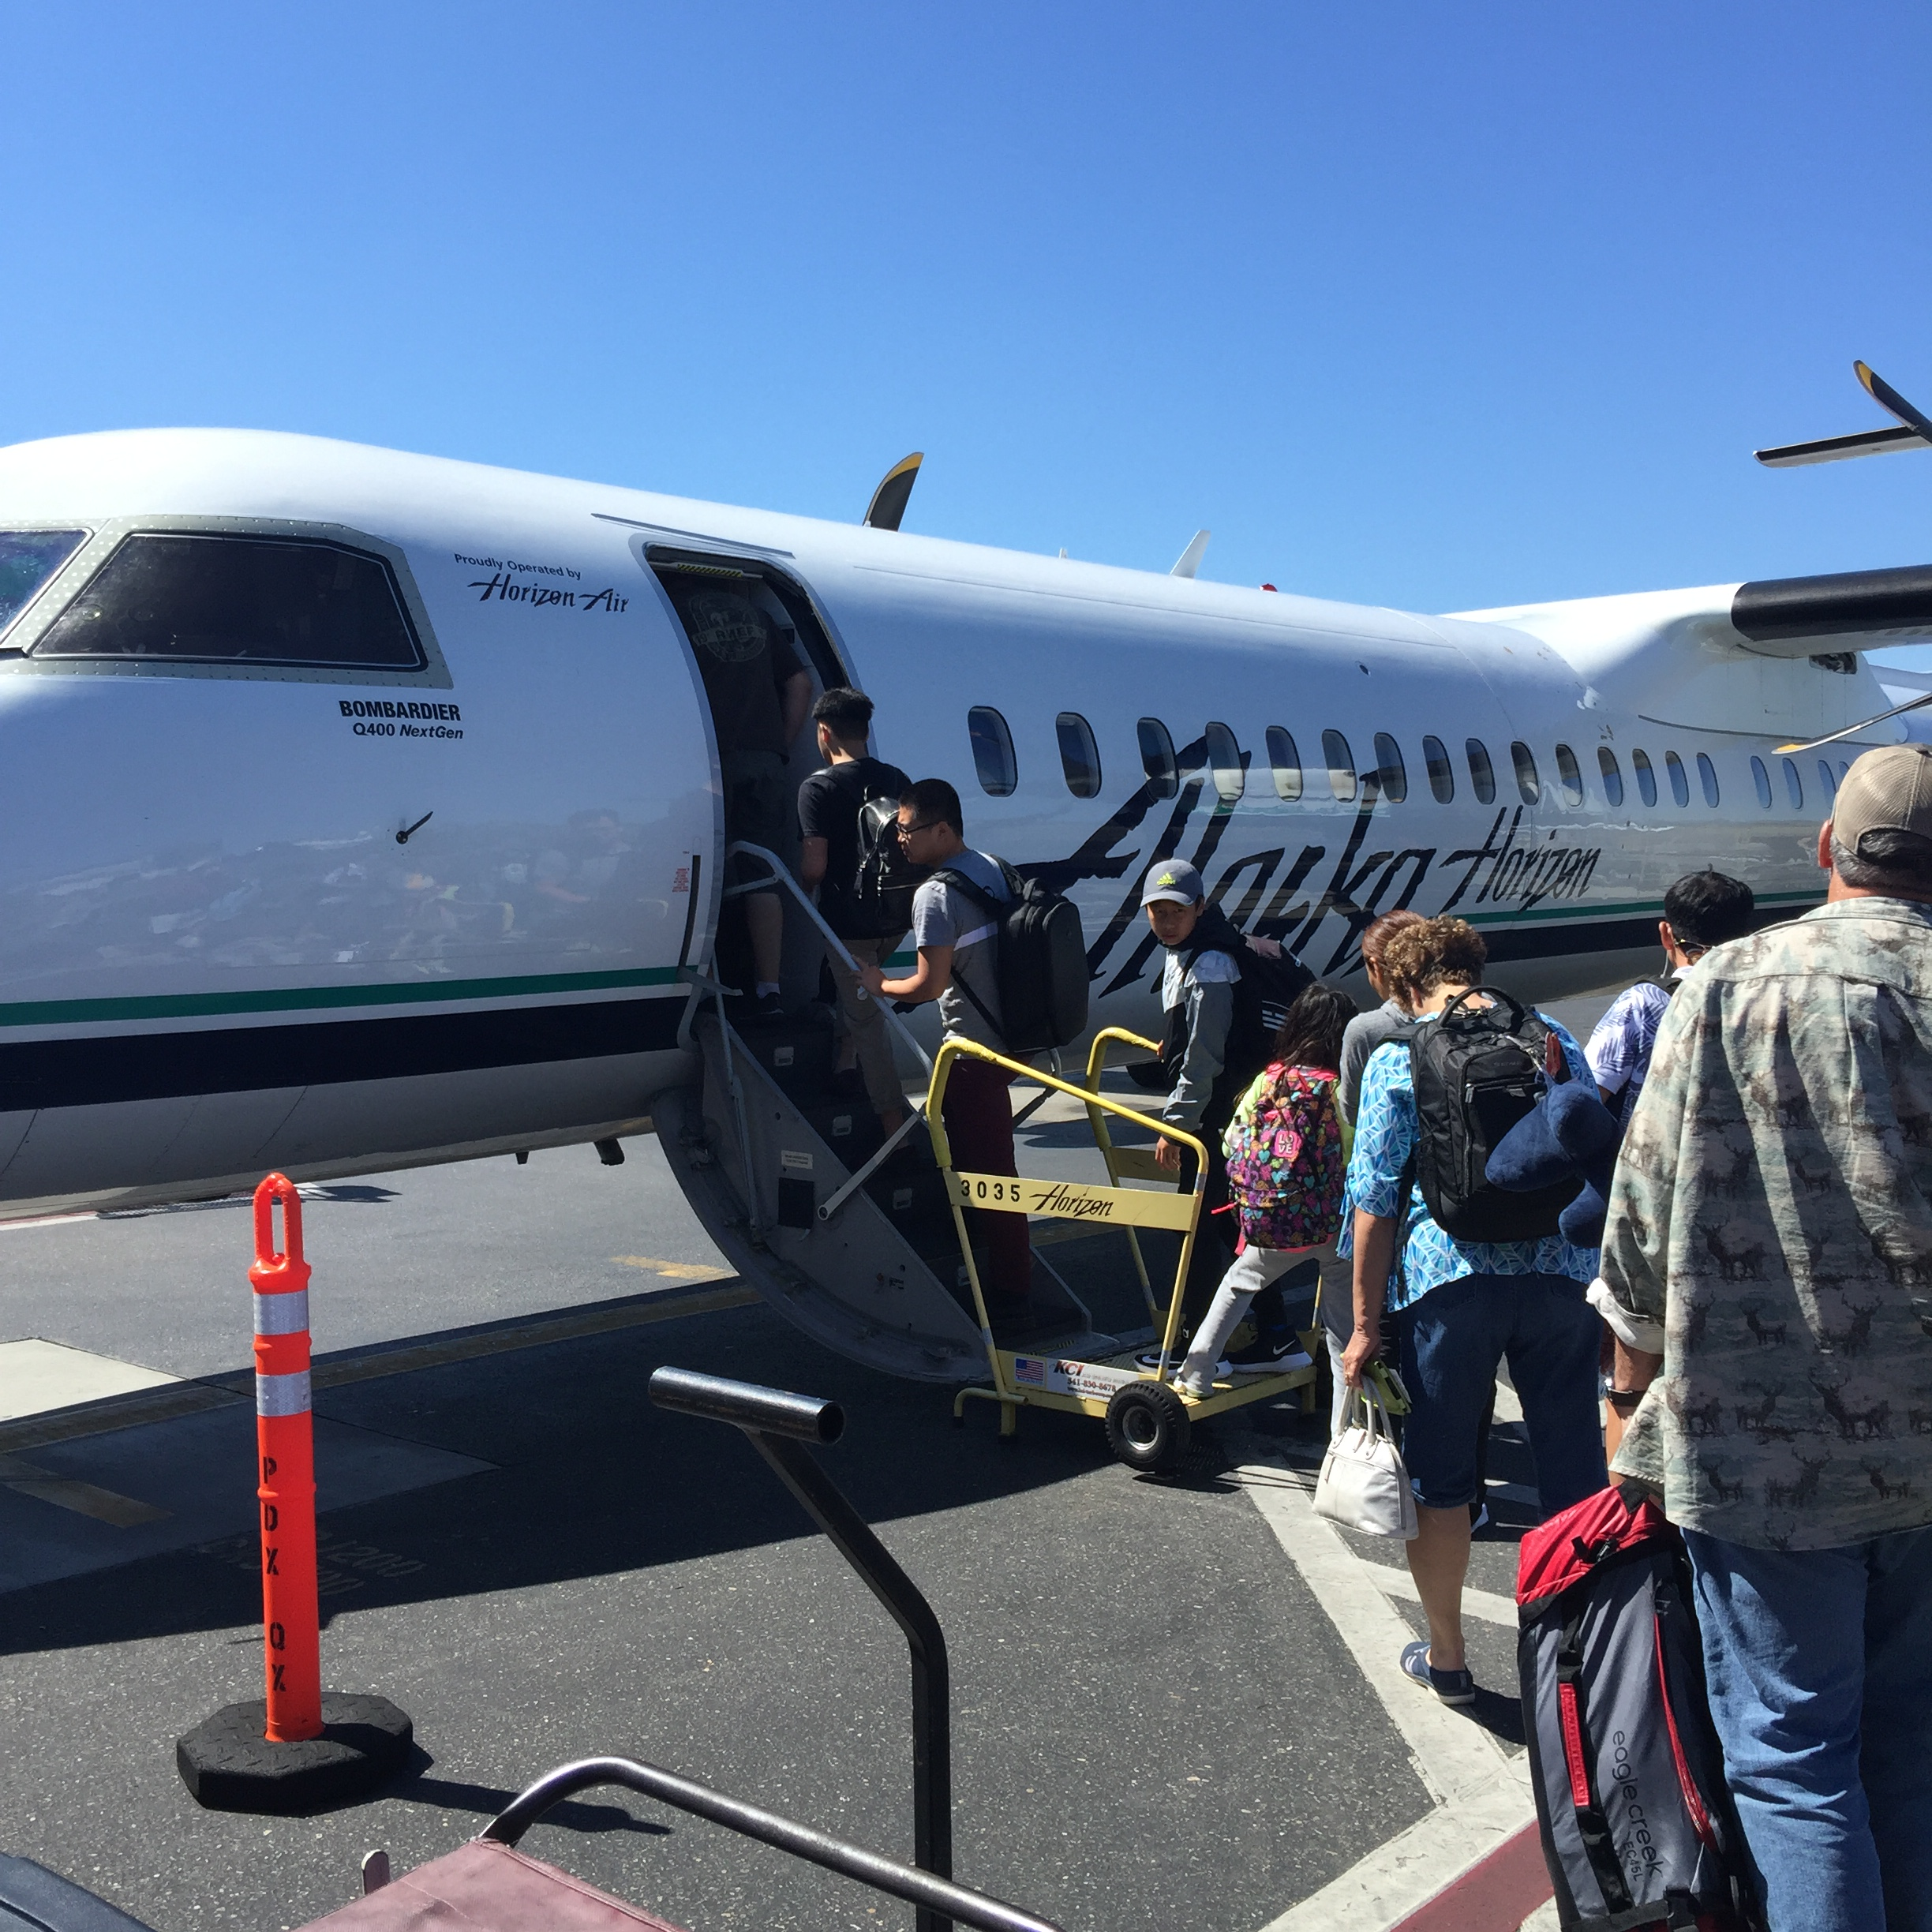 Flying to SeaTac Airport